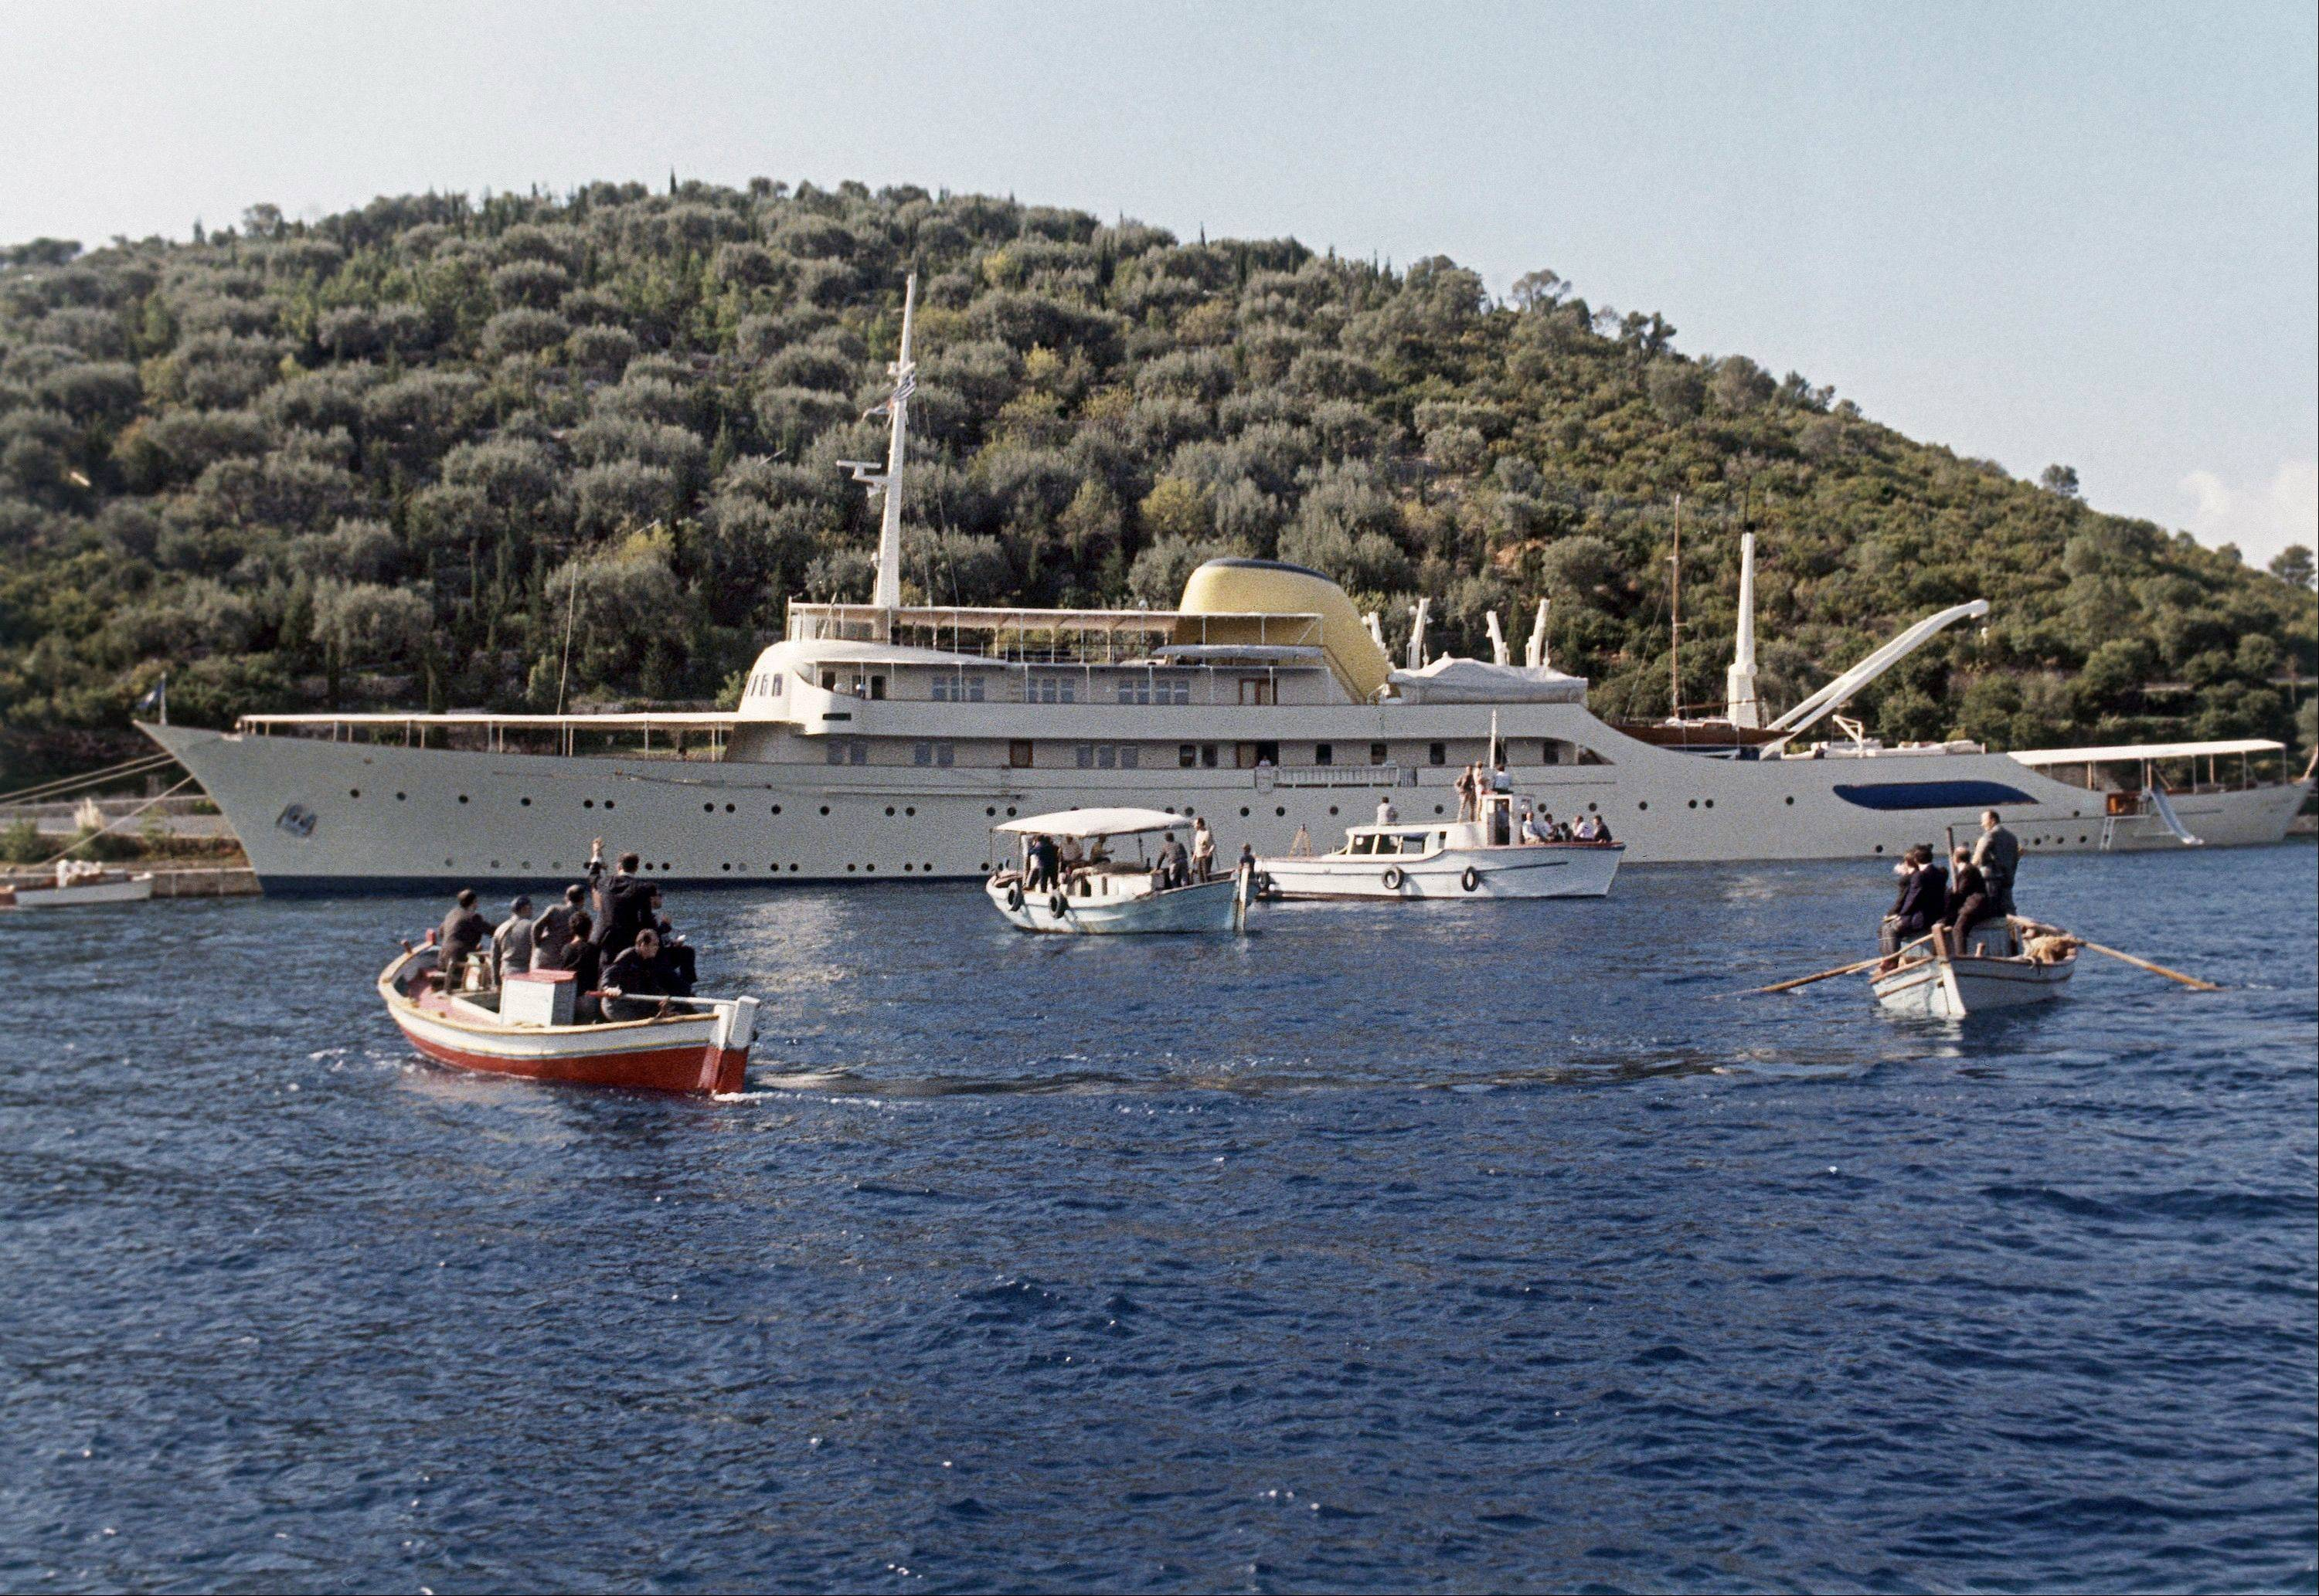 This is a 1963 file photo of Aristotle Onassis' yacht Christina at anchor in the Mediterranean. Onassis wed Jacqueline Kennedy aboard this yacht in a marriage ceremony October 1968.